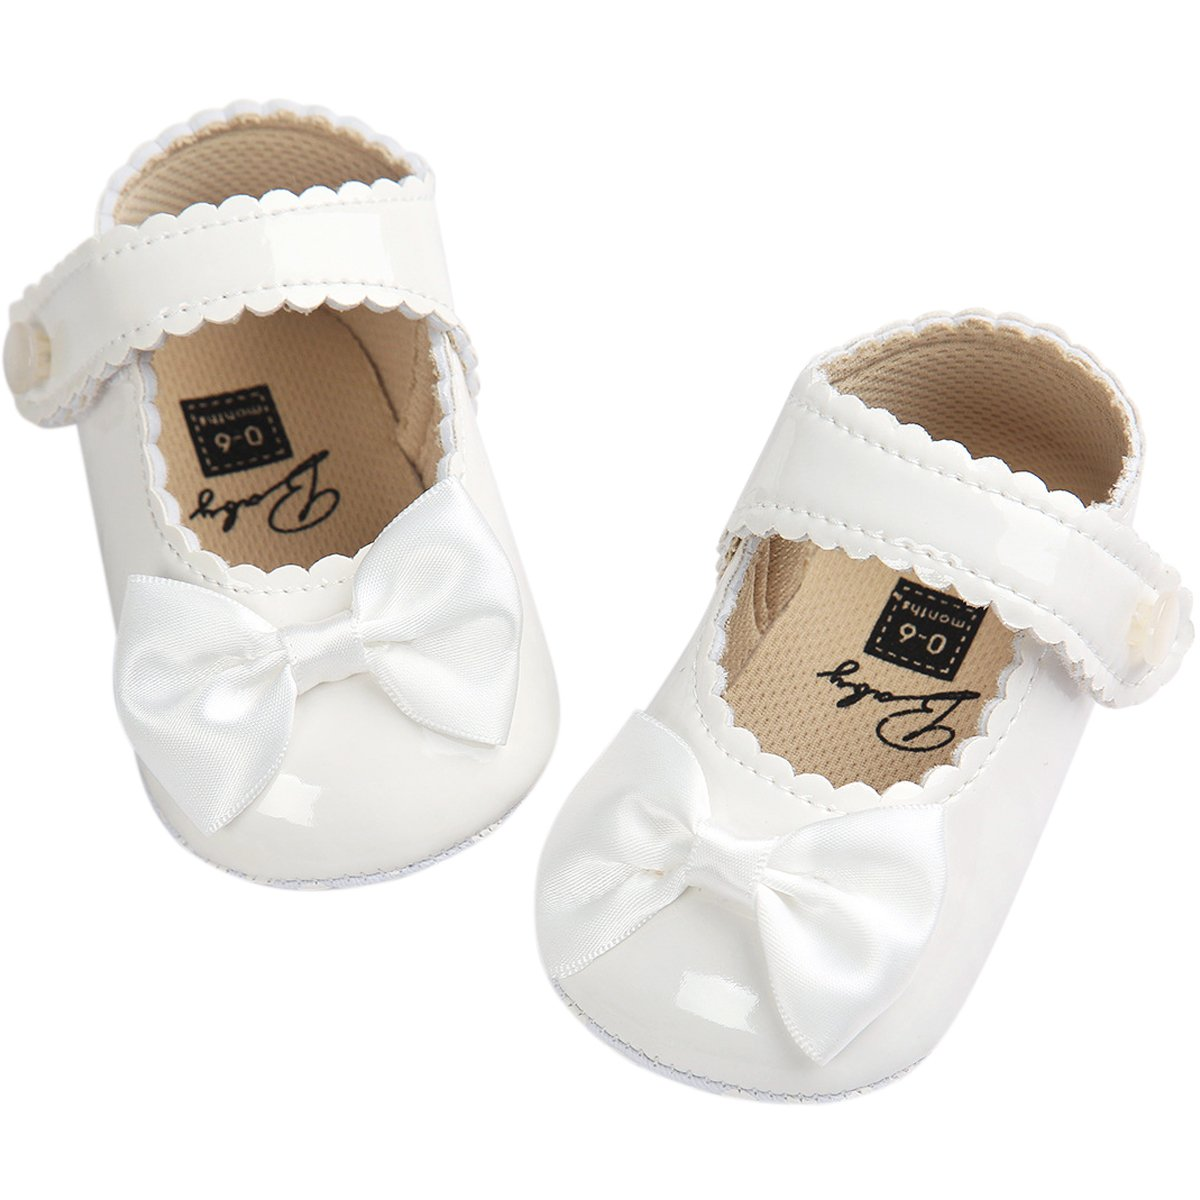 Fire Frog Baby Girls Mary Jane Pu Leather Bowknot Pincess Prewalker Christening Baptism Crib Shoes